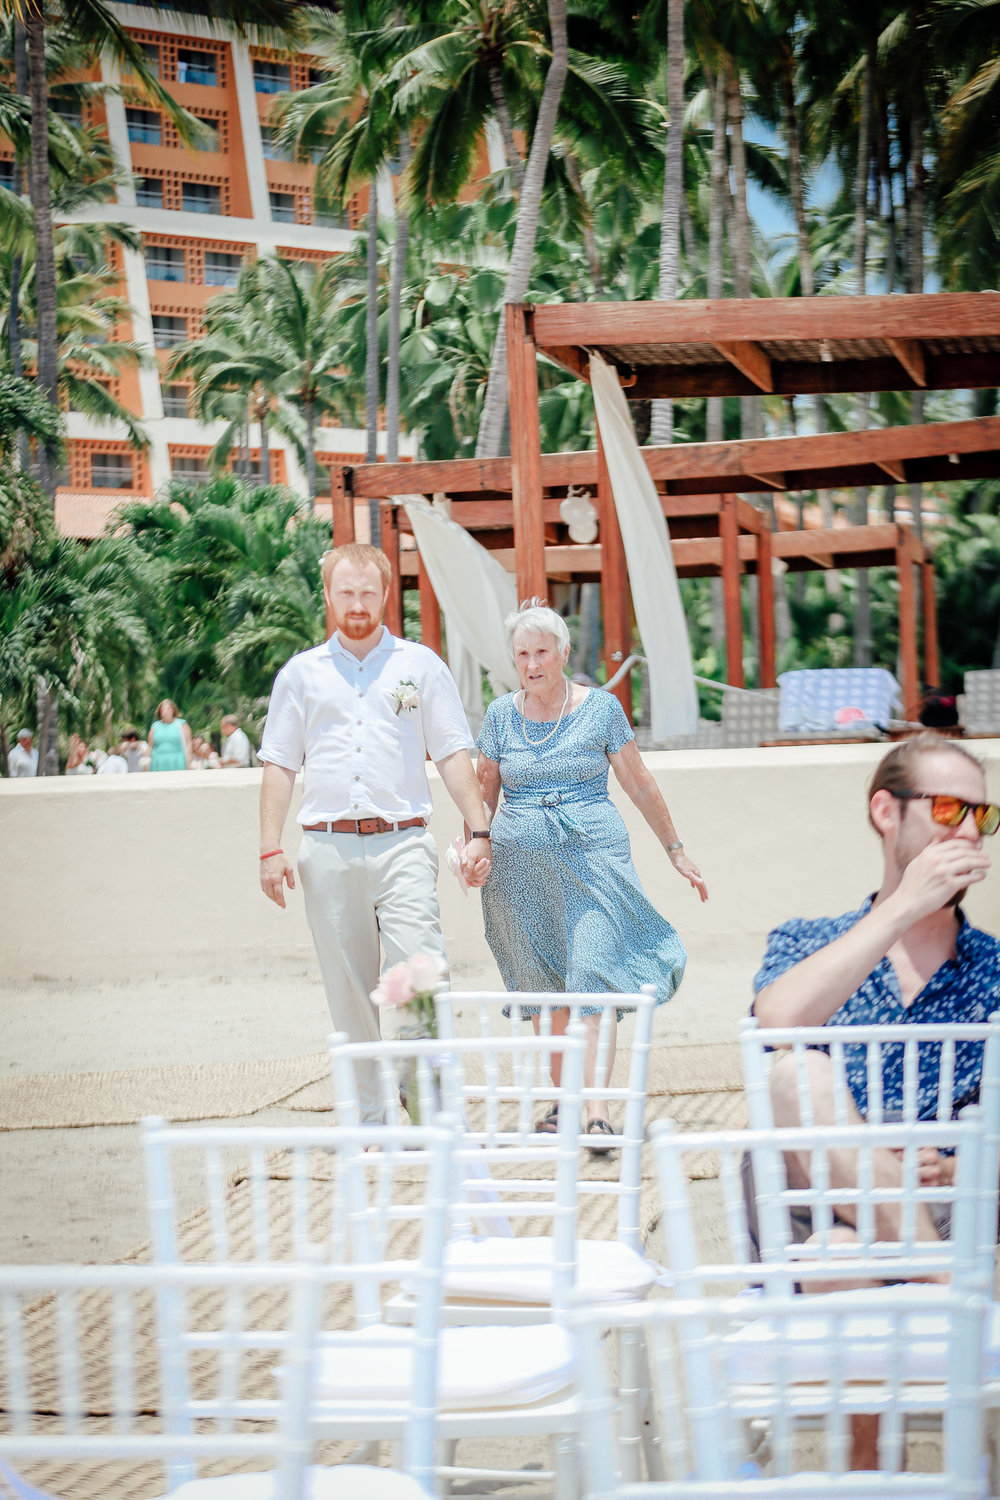 Tiffany and Ryan - Puerto Vallarta Wedding Photographer - 47.jpg